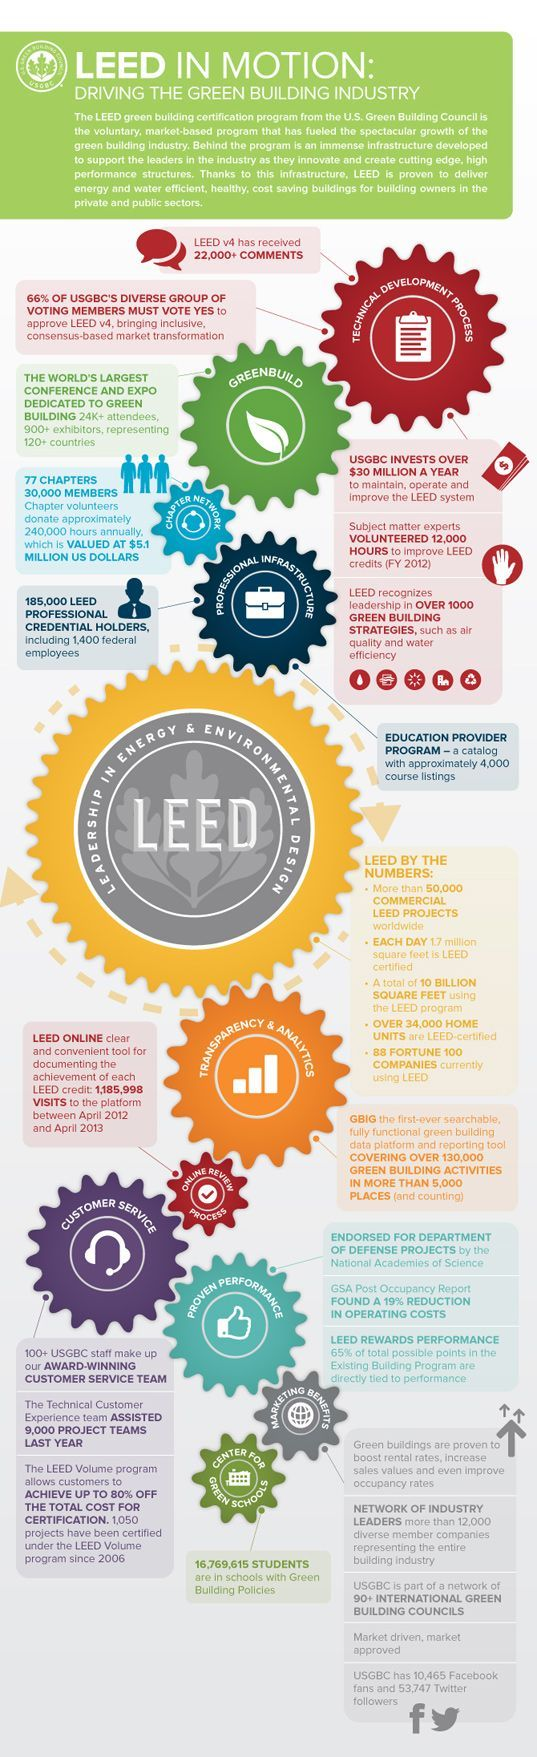 21 best leed certified images on pinterest leed certification leed in motion infographic shows how leed certification has driven the green building industry 1betcityfo Choice Image